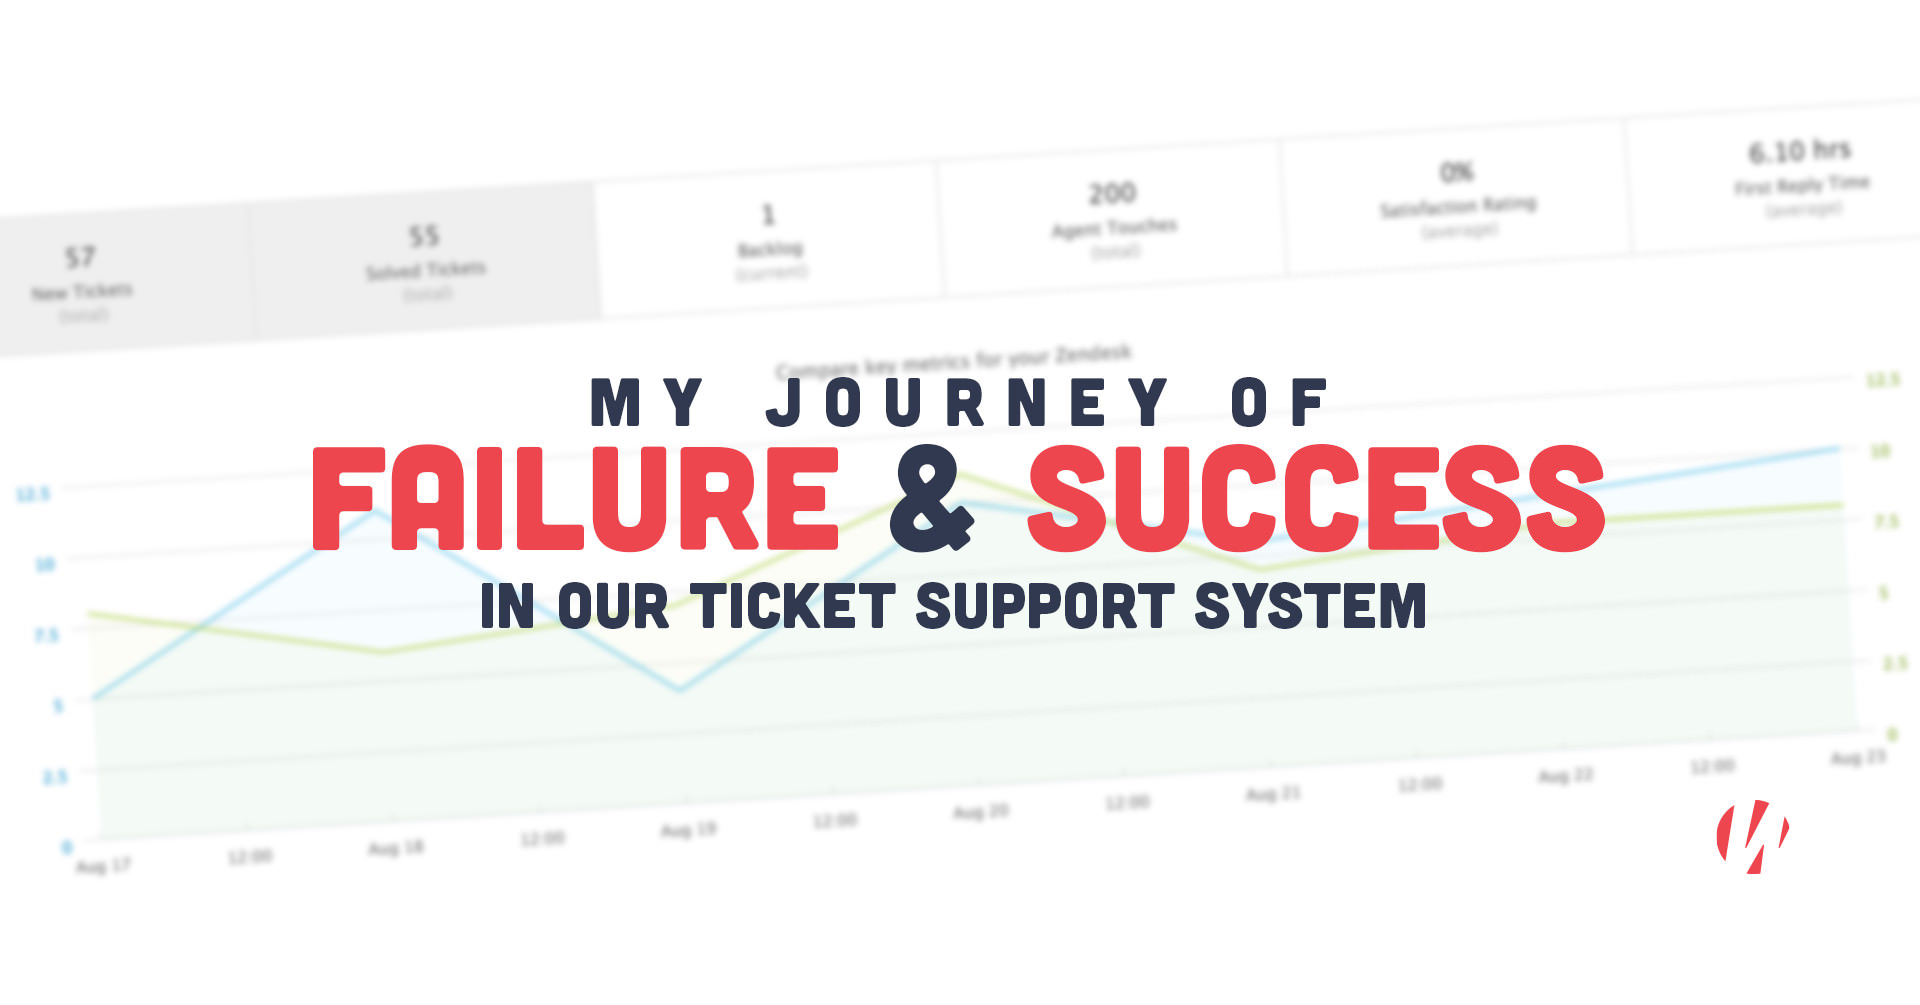 Fix It Ticket >> My Journey of Failure & Success in our Ticket Support System